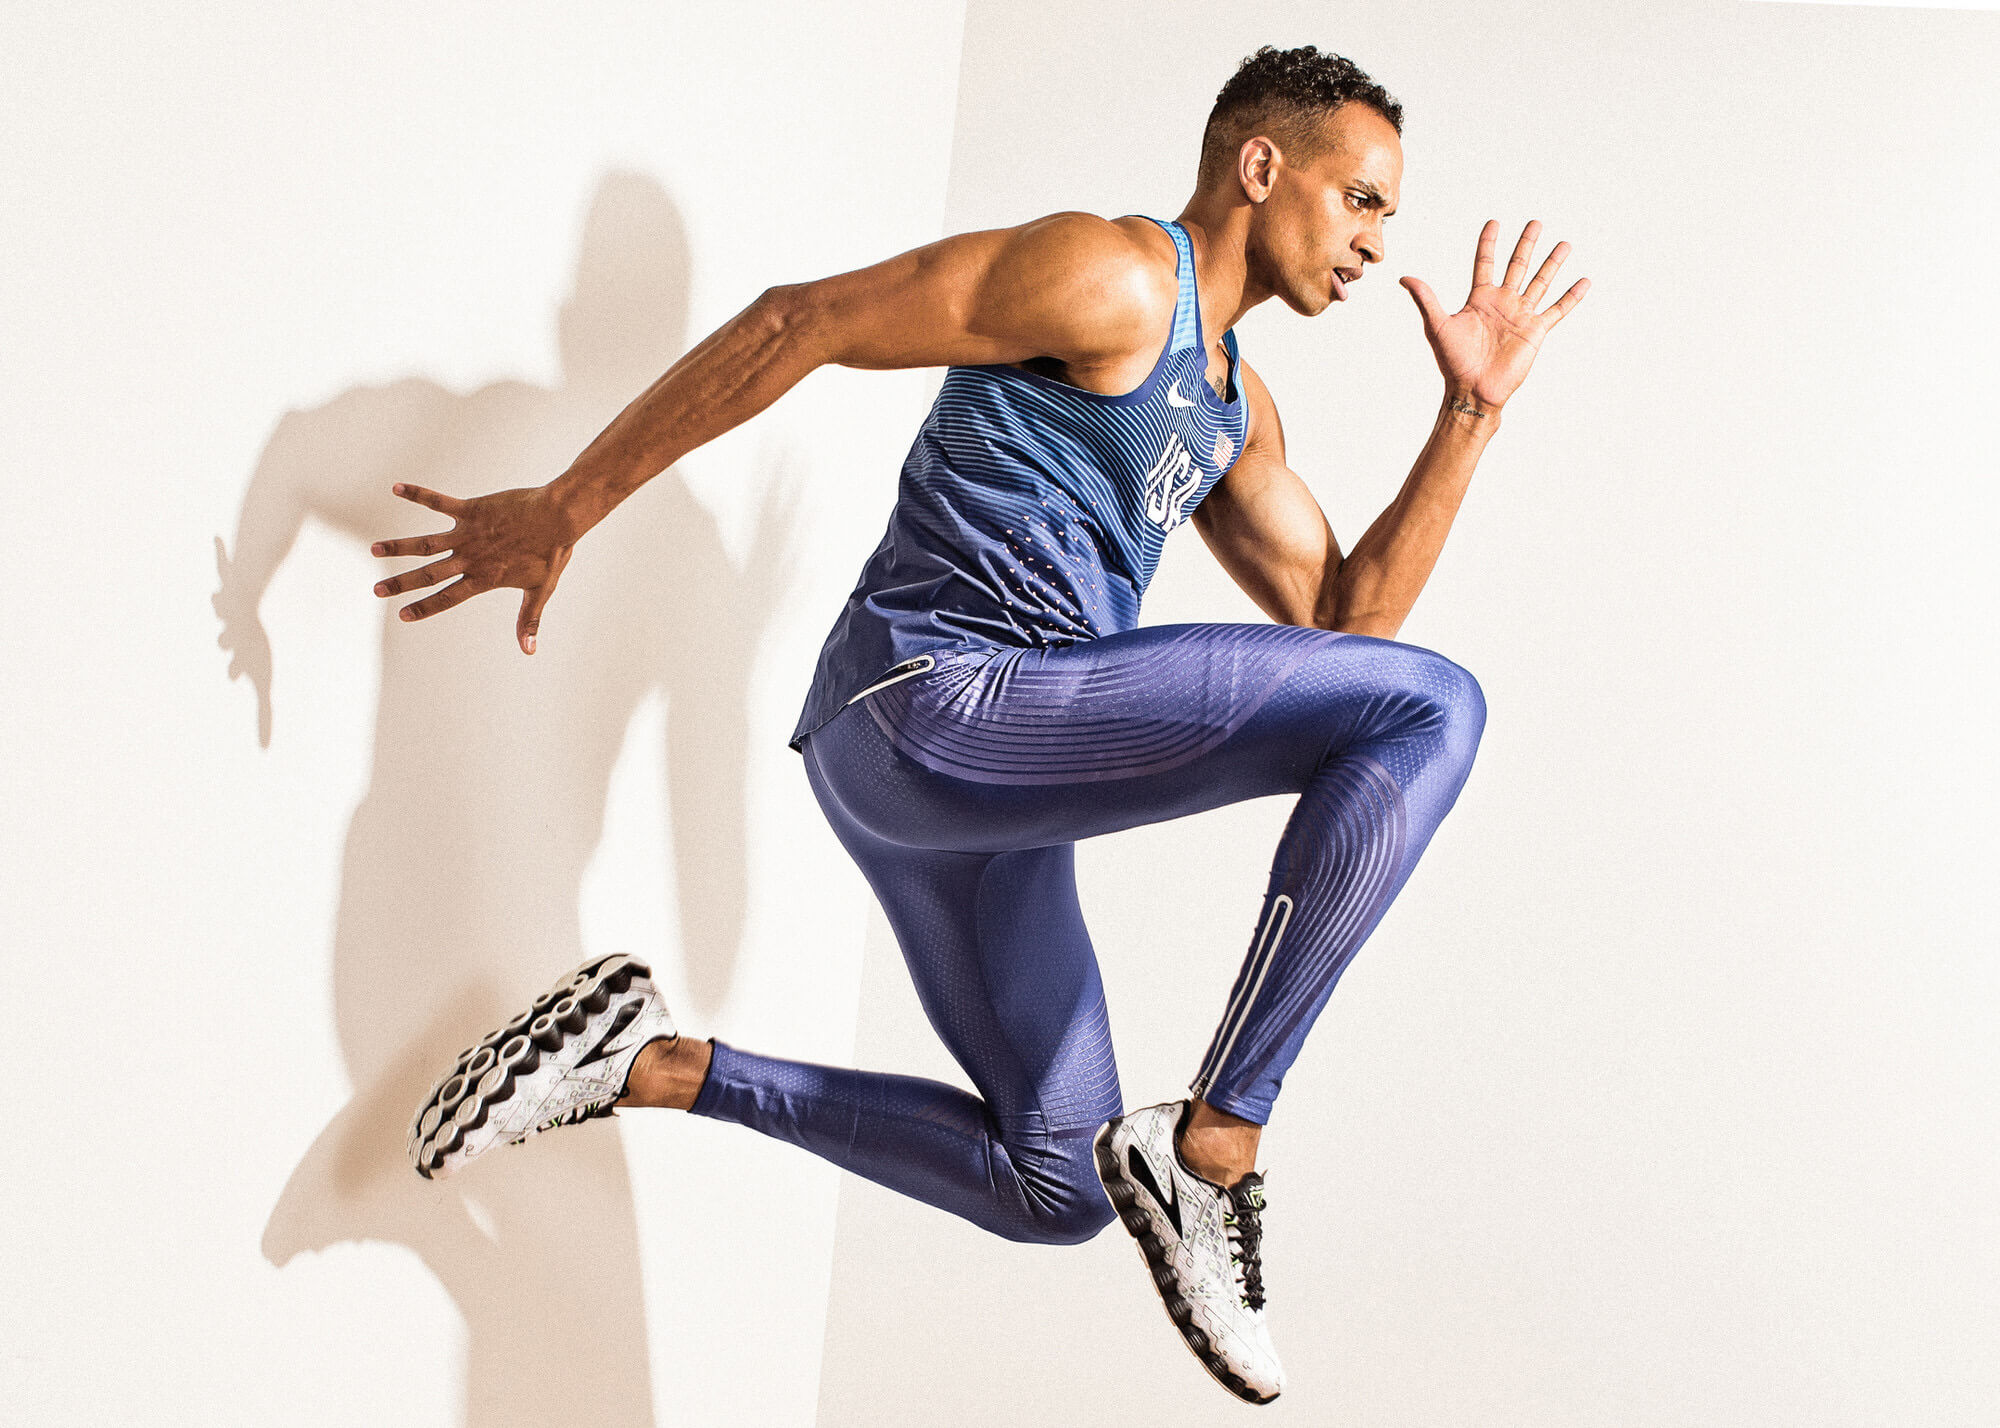 Gym trainer posing in dance move